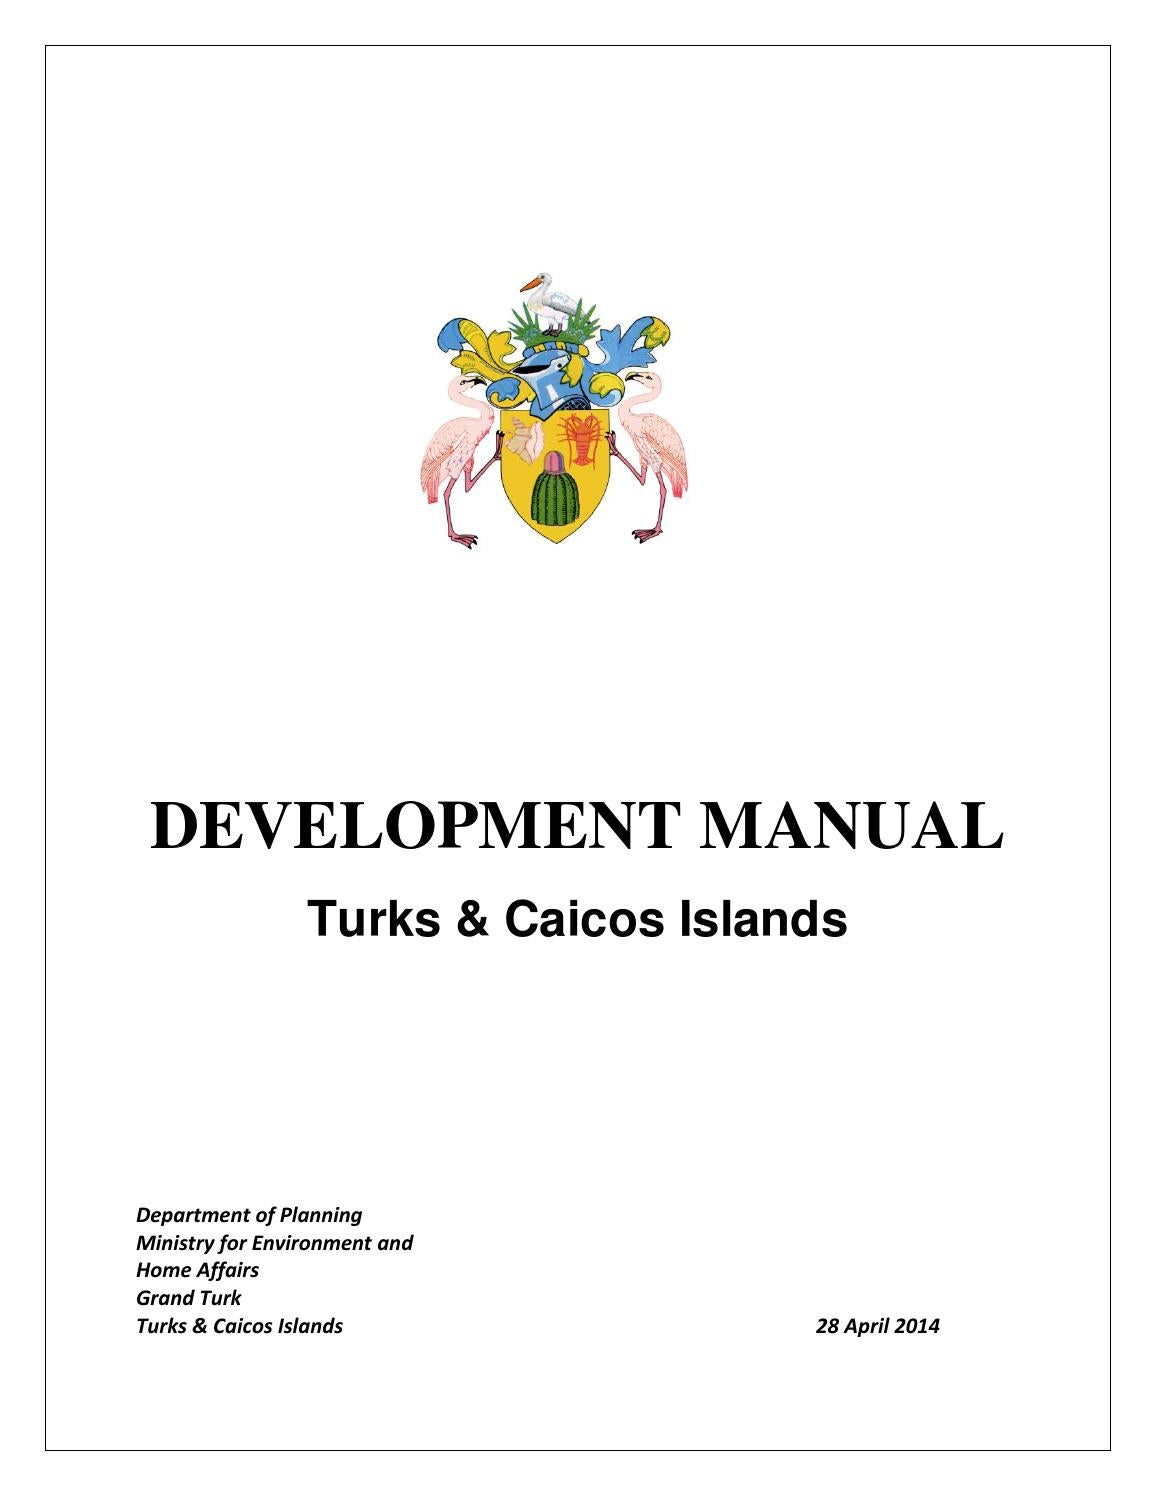 TCI Development Manual Final Print Copy 140416 by REGENCY